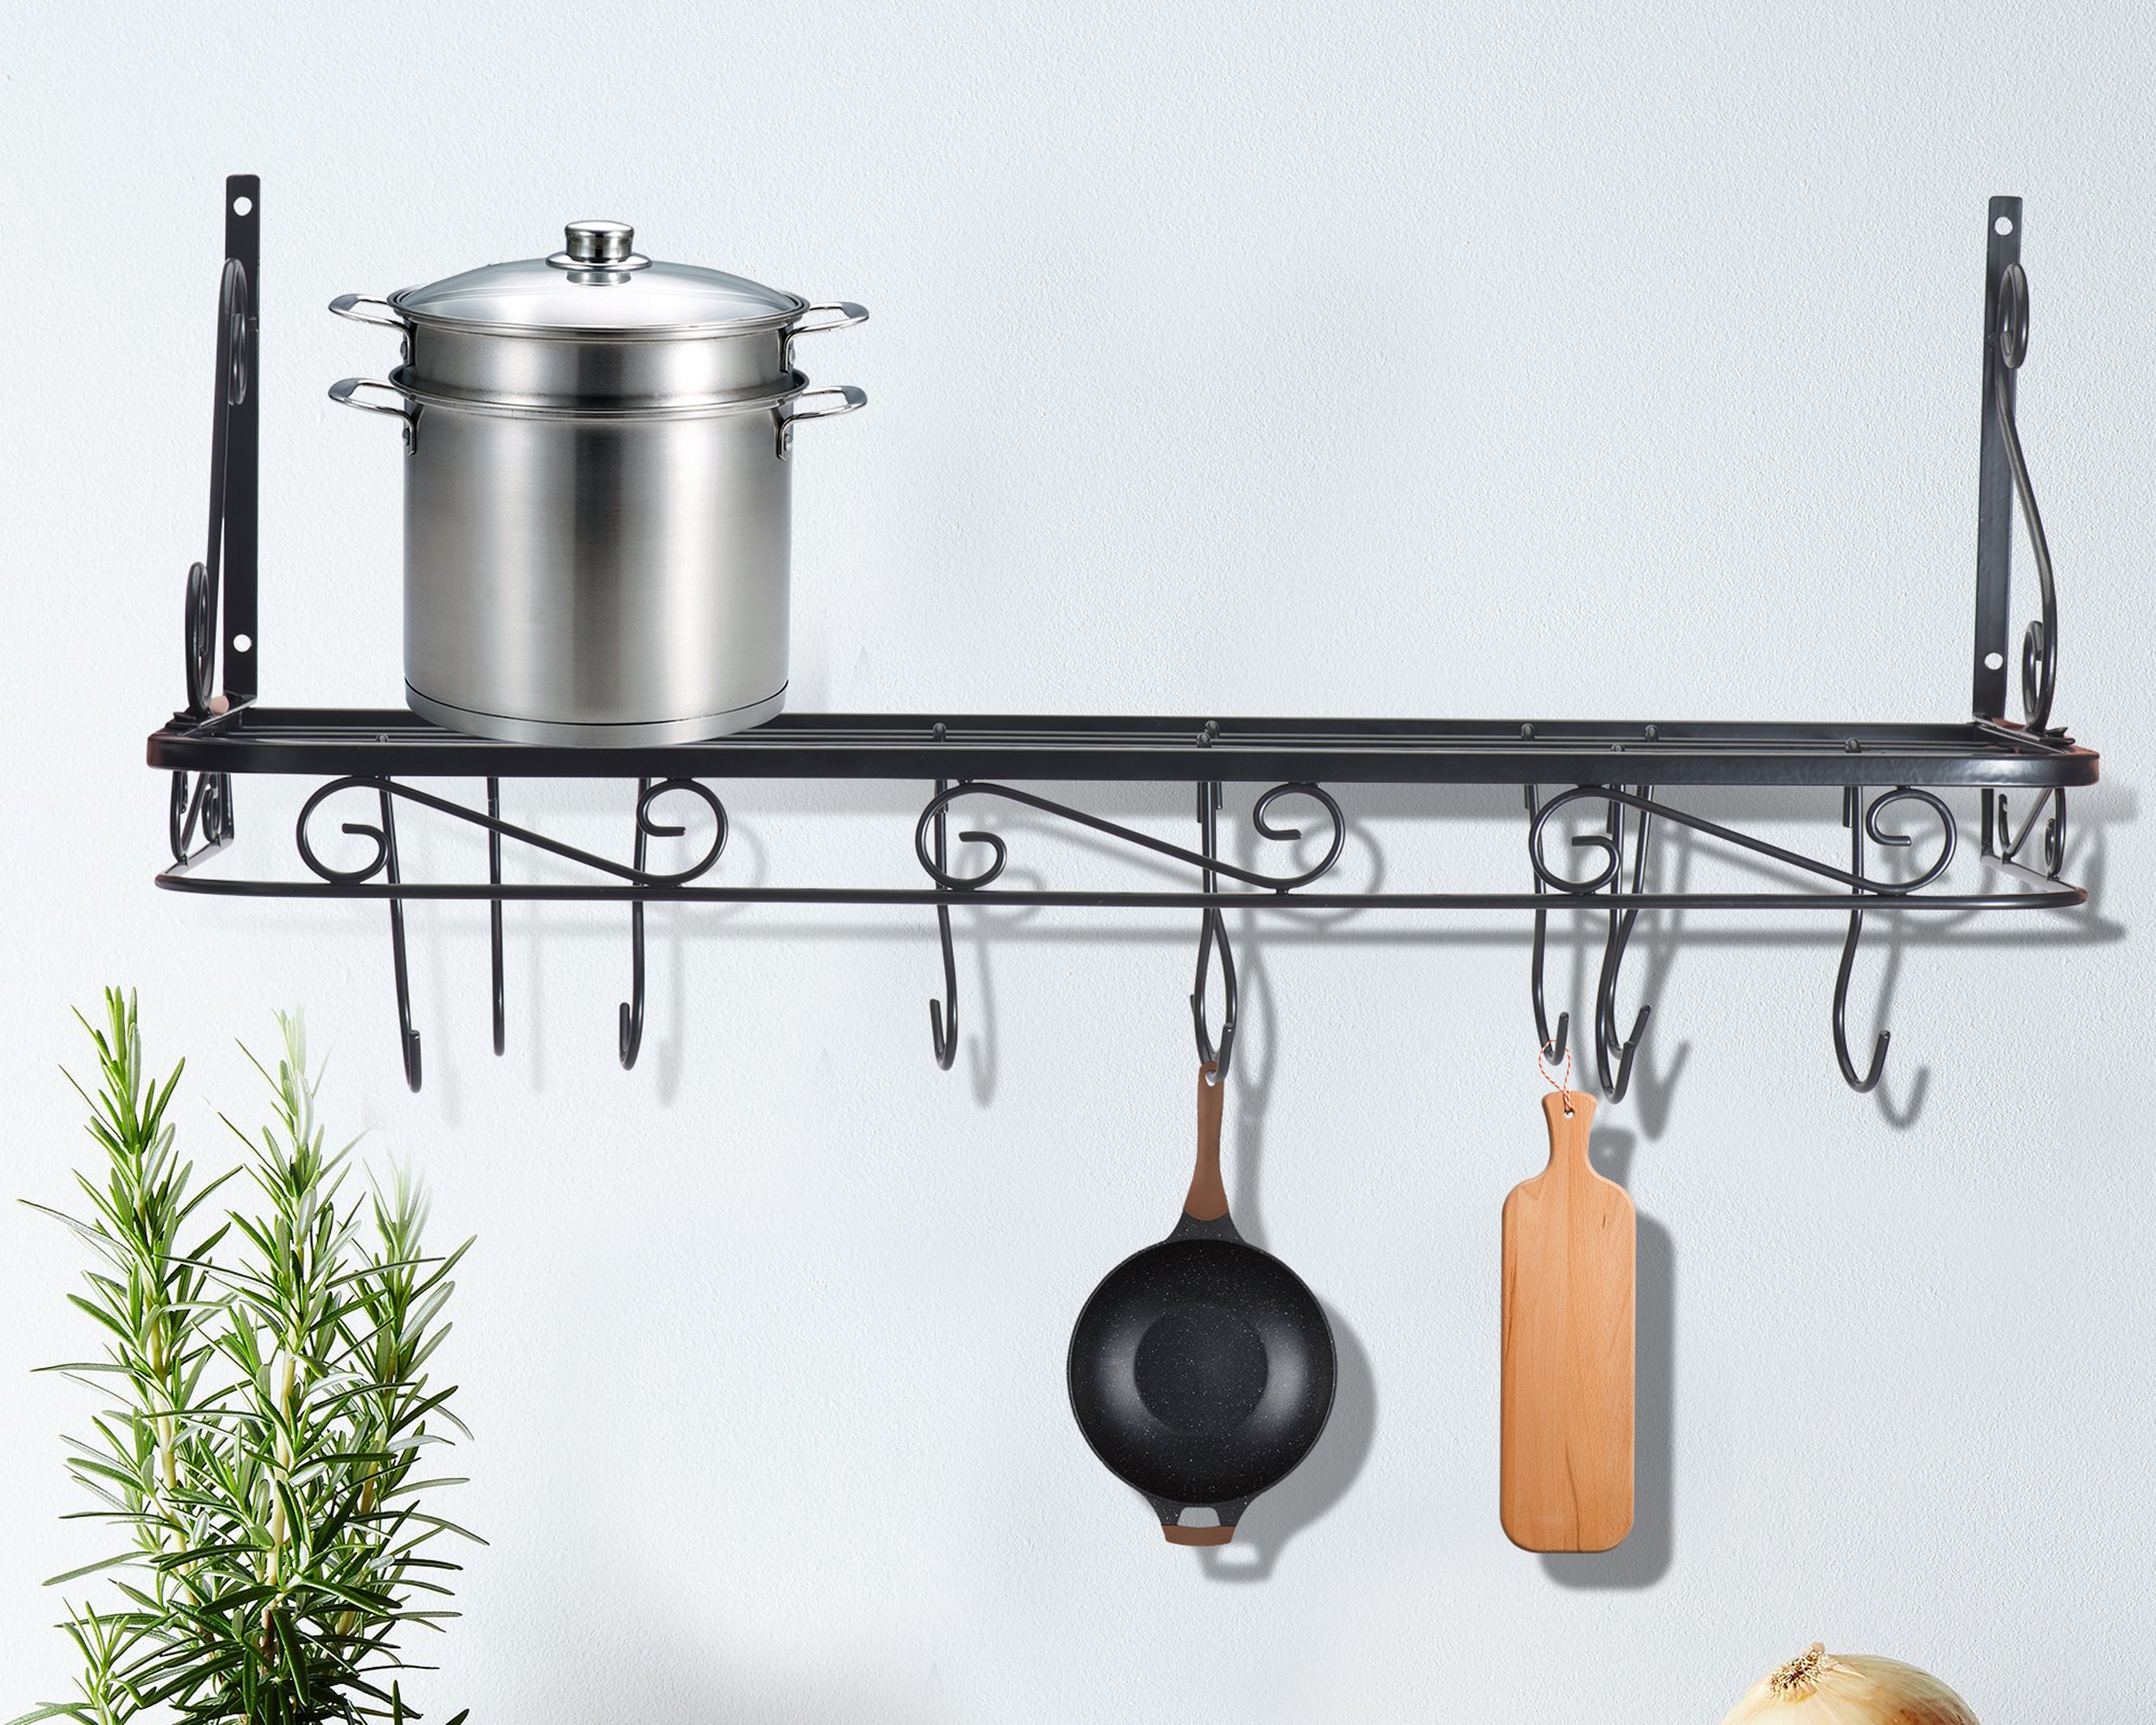 home pots organizing pans index to for smart organize and tools how bans rack ways cooking